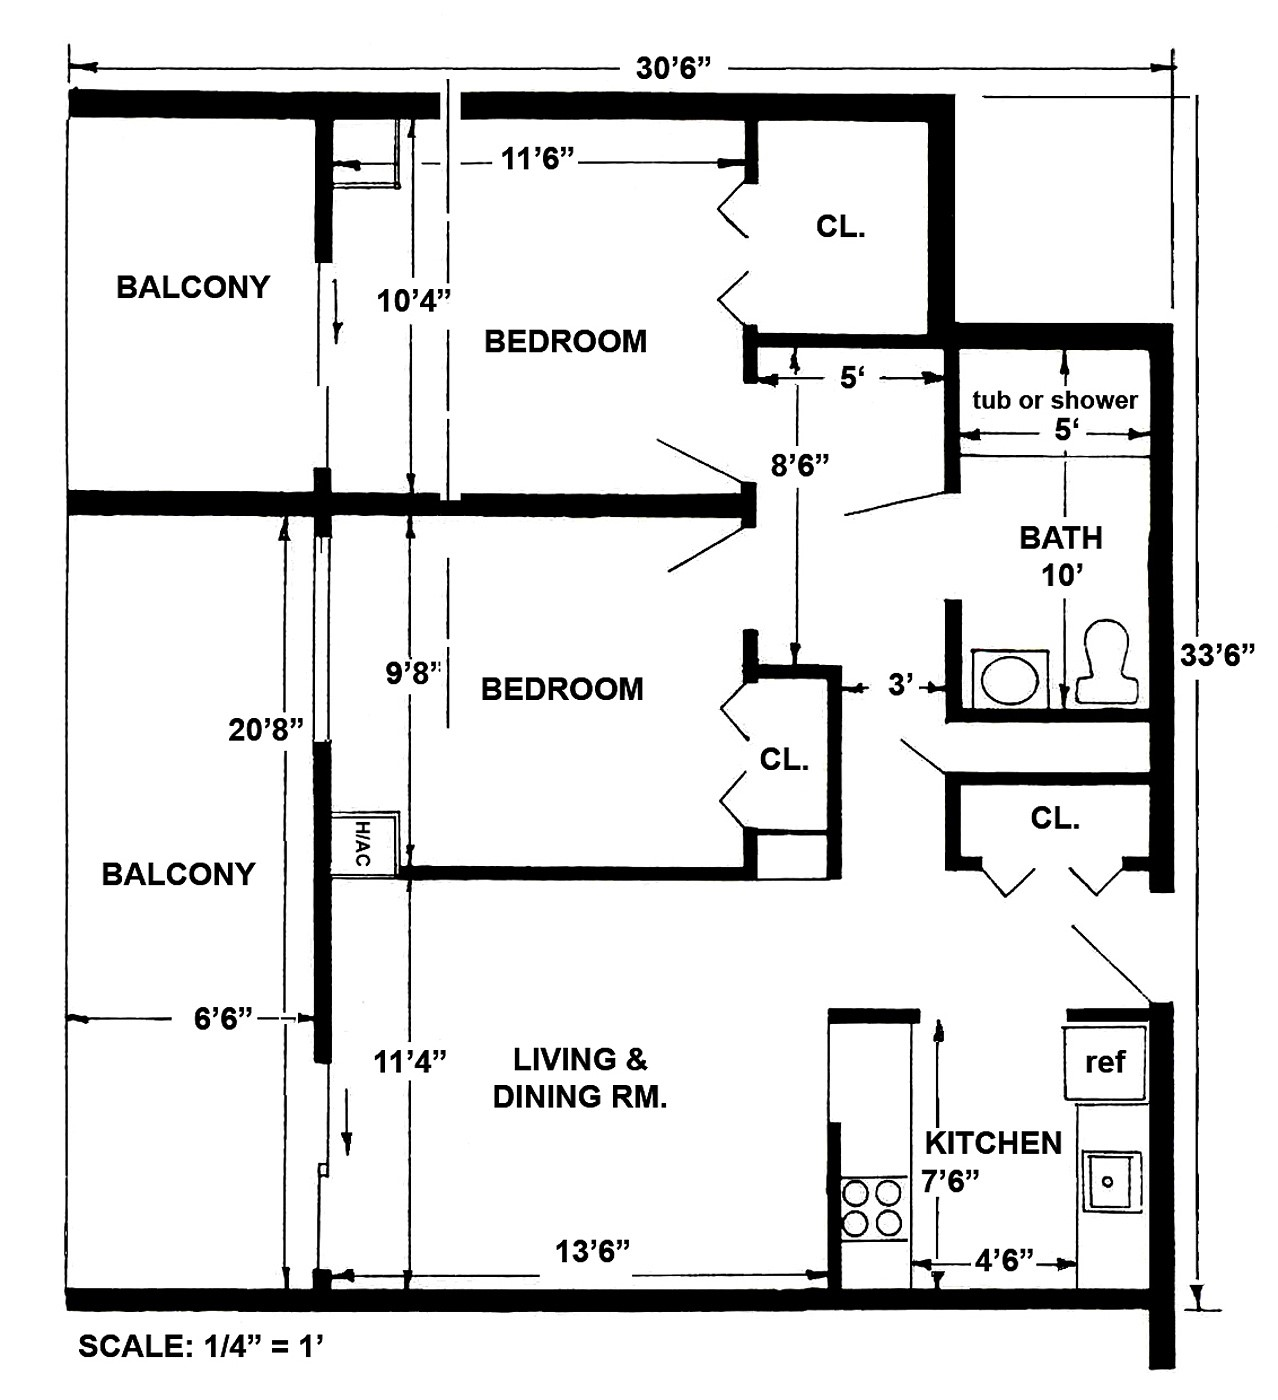 2 Bedroom Layout - Large layout